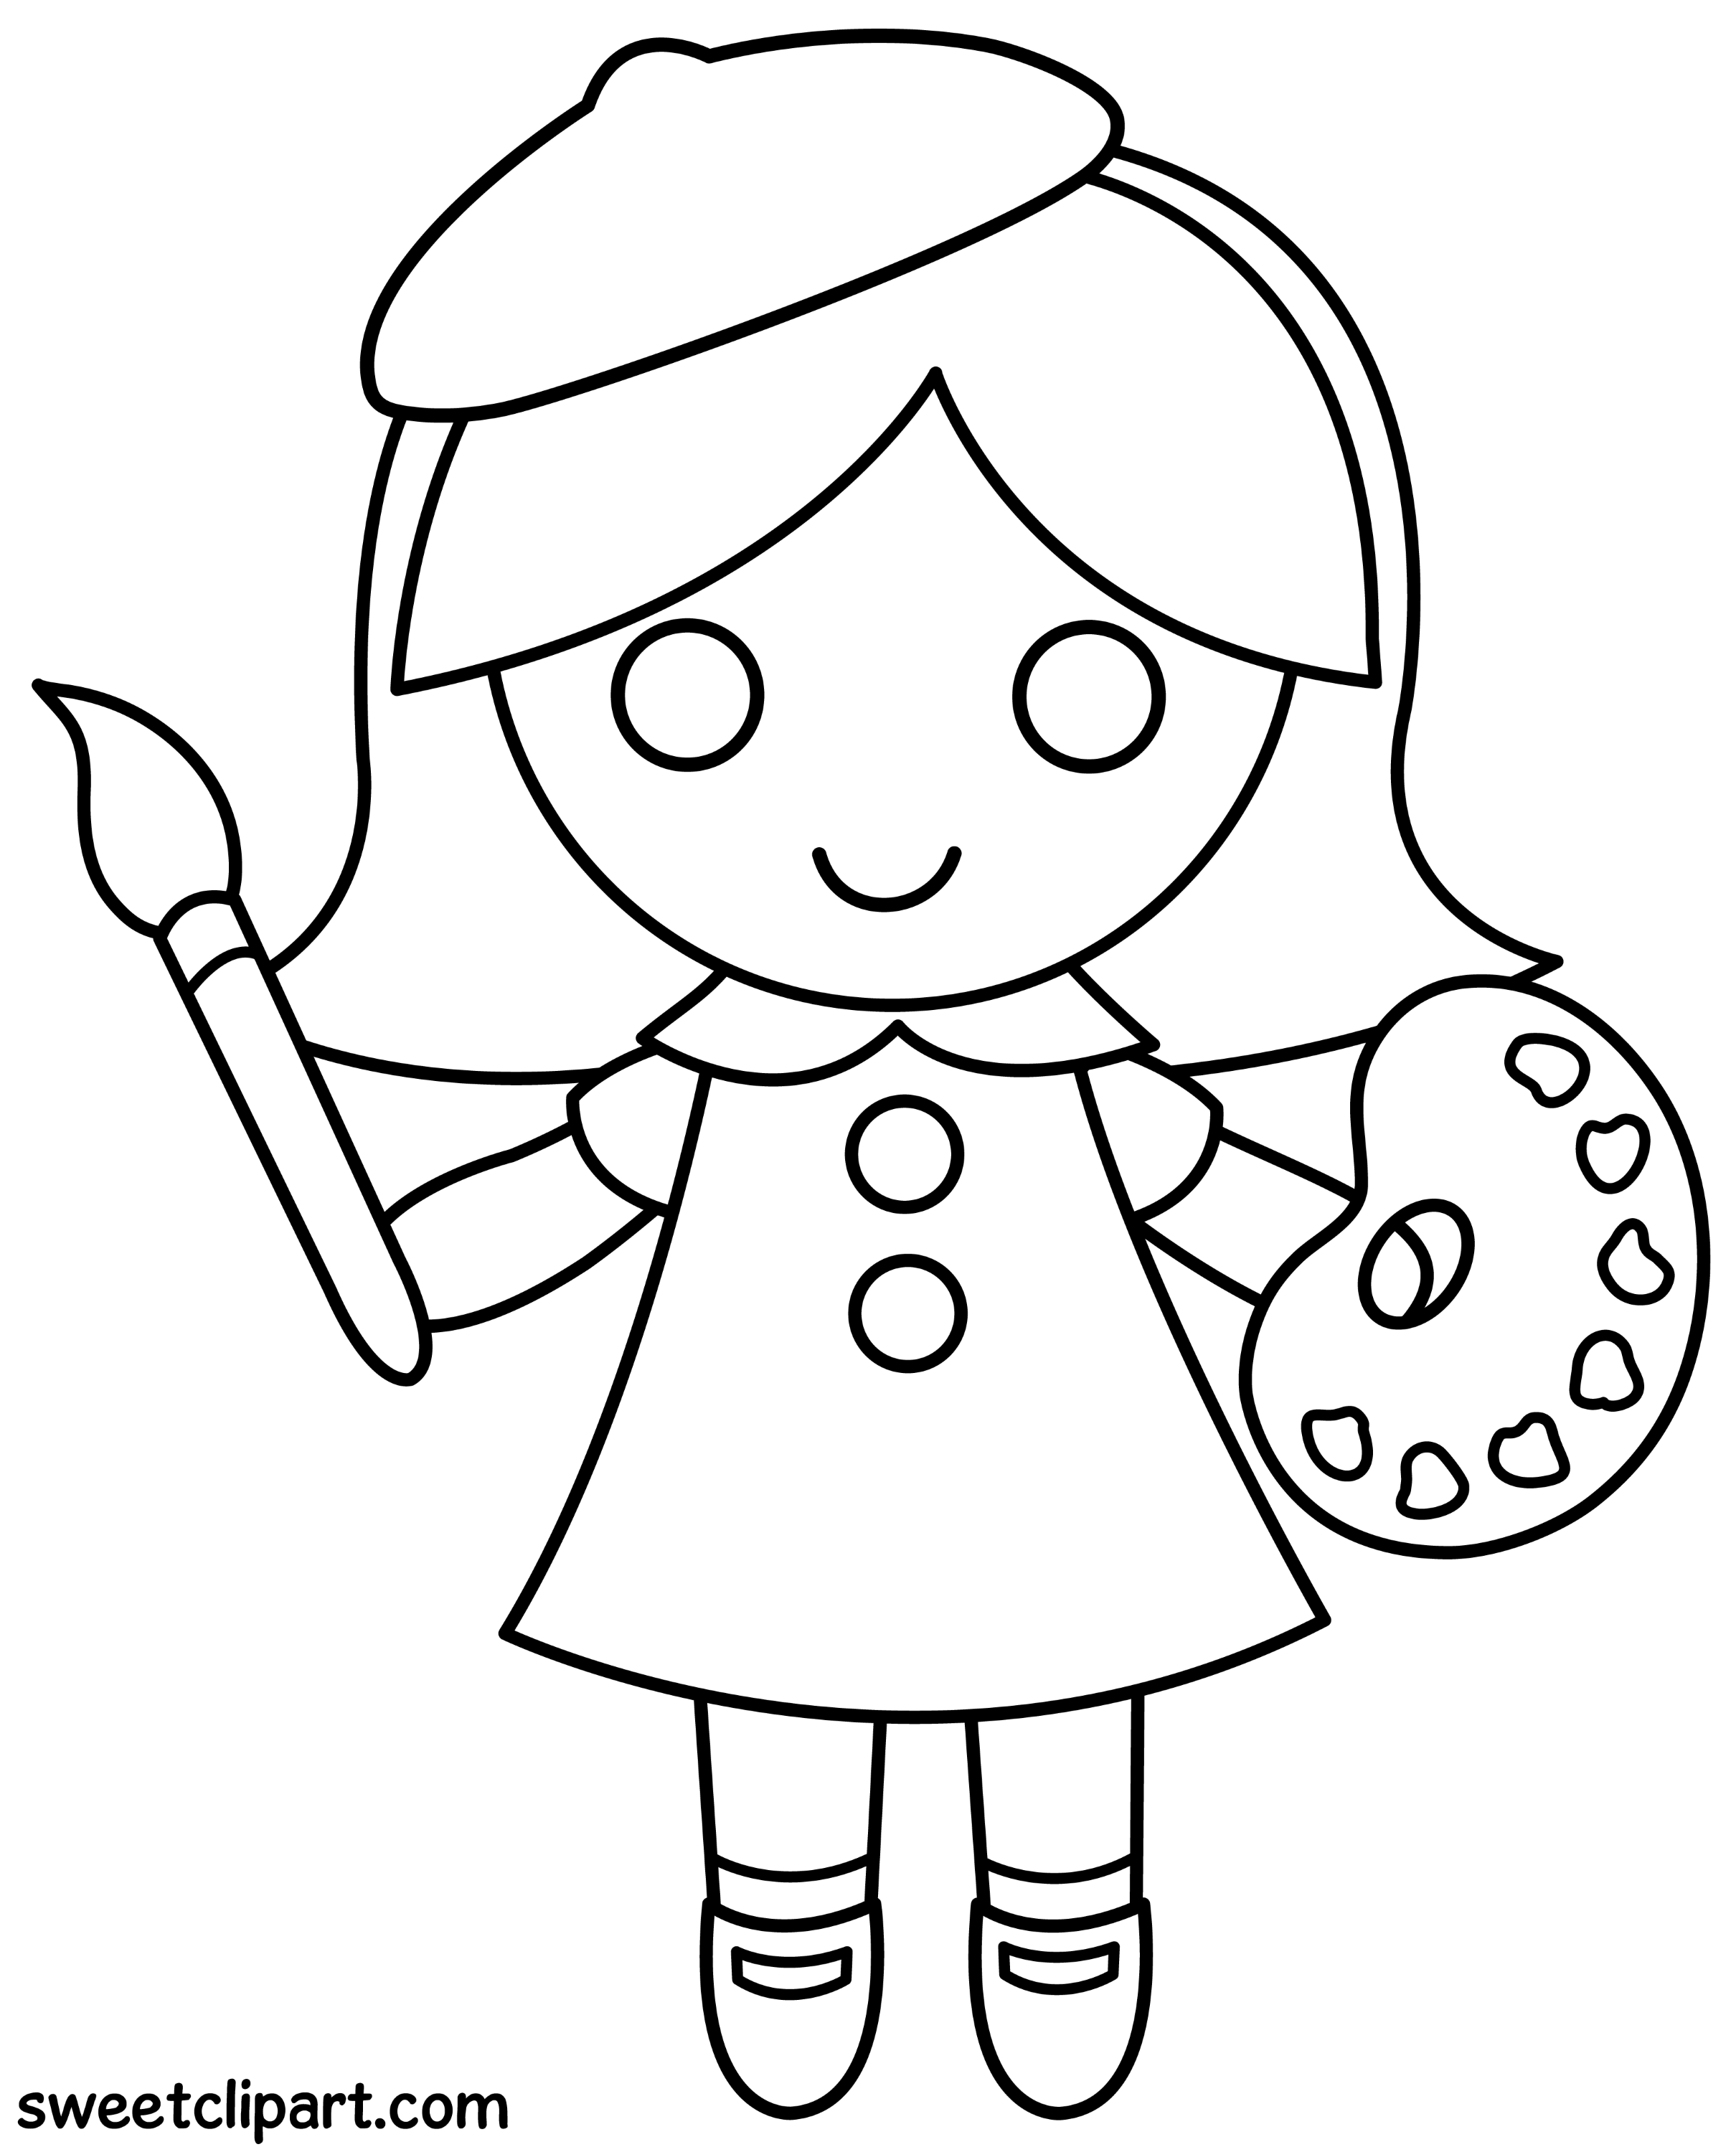 coloring picture of girl 9 baby girl coloring pages jpg ai illustrator download girl picture of coloring